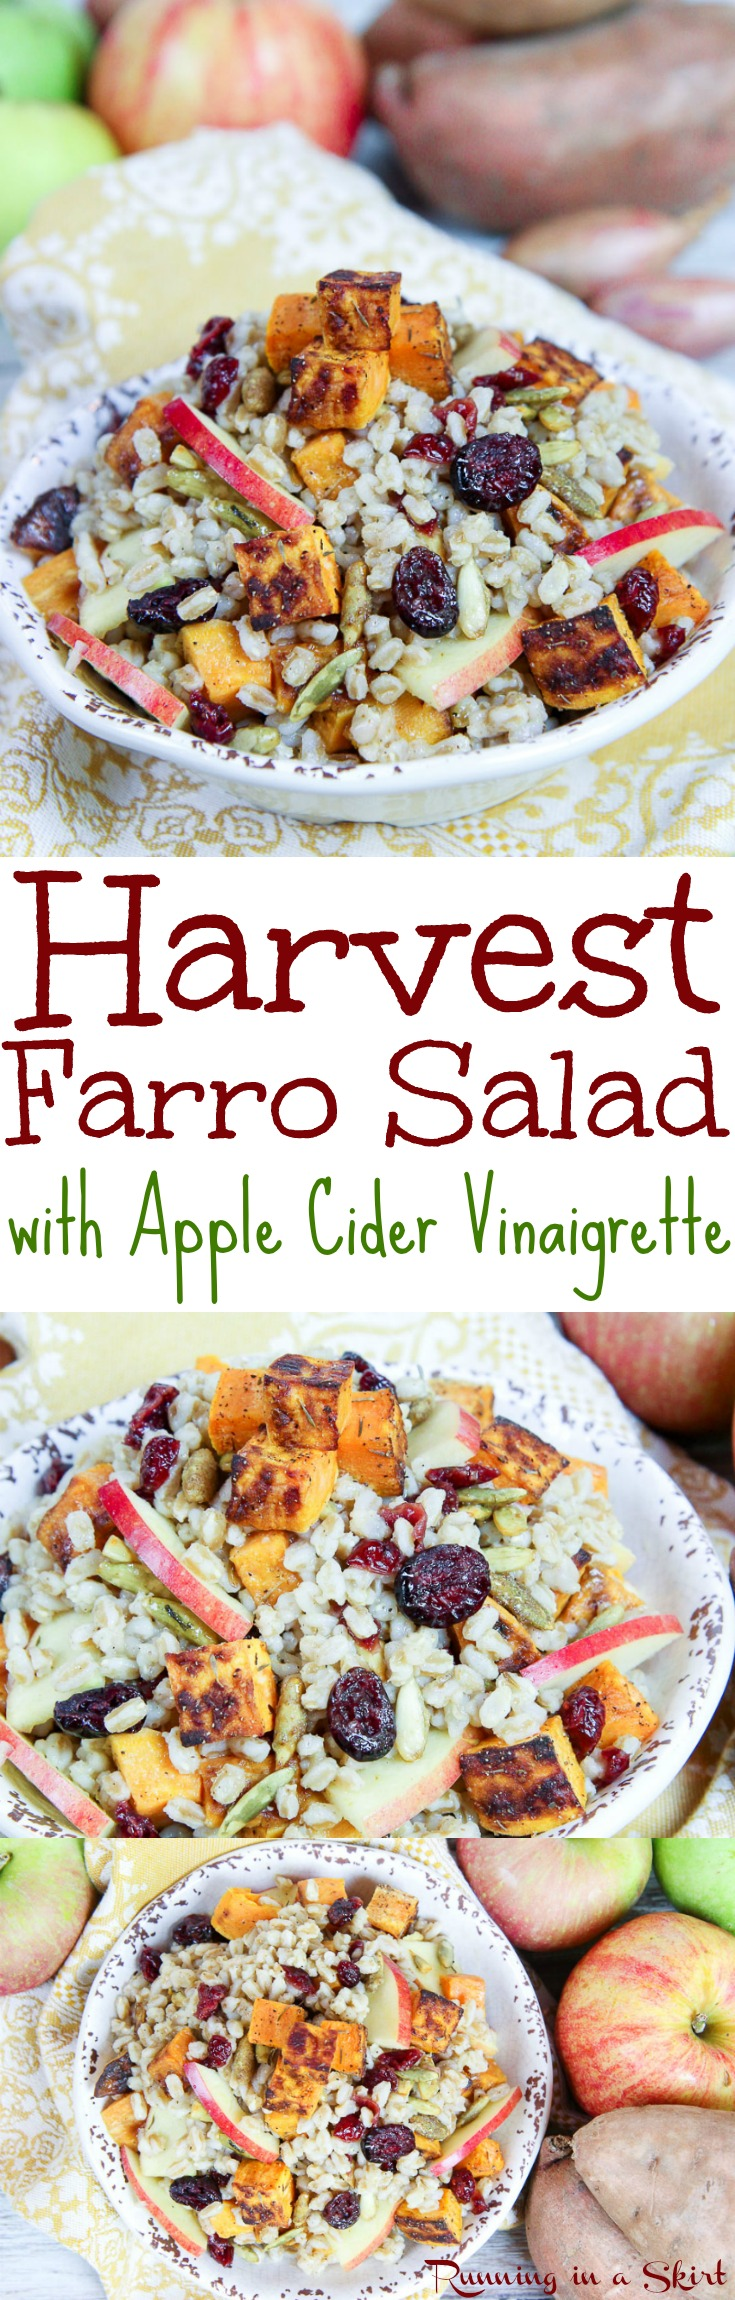 Harvest Farro Salad recipe with Apple Cider Vinaigrette.  A healthy fall or winter dish.  Perfect as a vegan Thanksgiving main dish or vegetarian side dish. Serve warm with roasted sweet potato, cranberry, apple and pumpkin seeds!  Packed with veggies. Simple, easy and delicious. / Running in a Skirt via @juliewunder